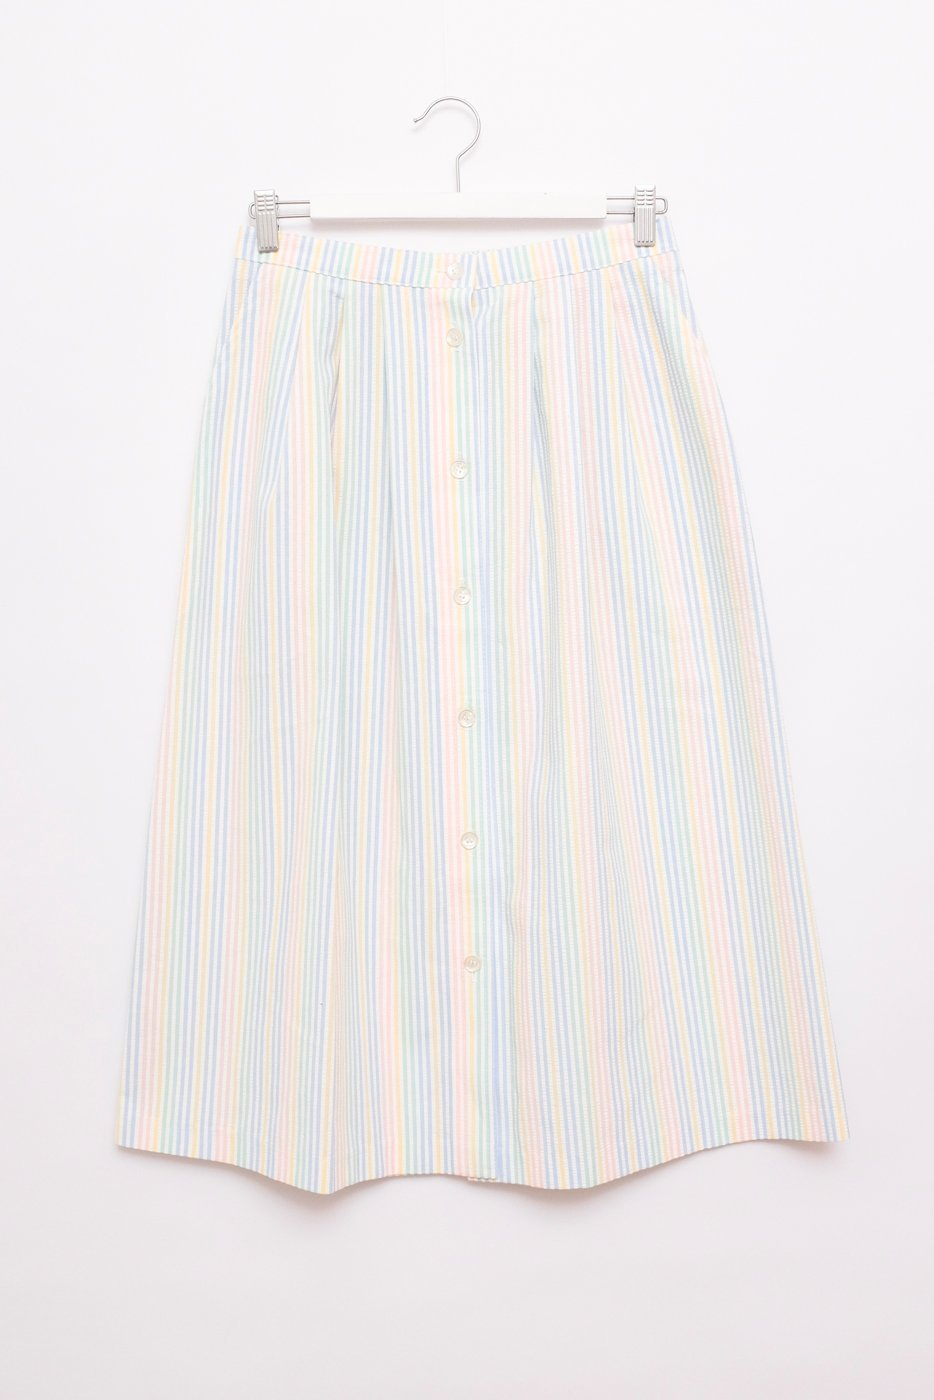 0413_PASTEL STRIPED VINTAGE MIDI SKIRT